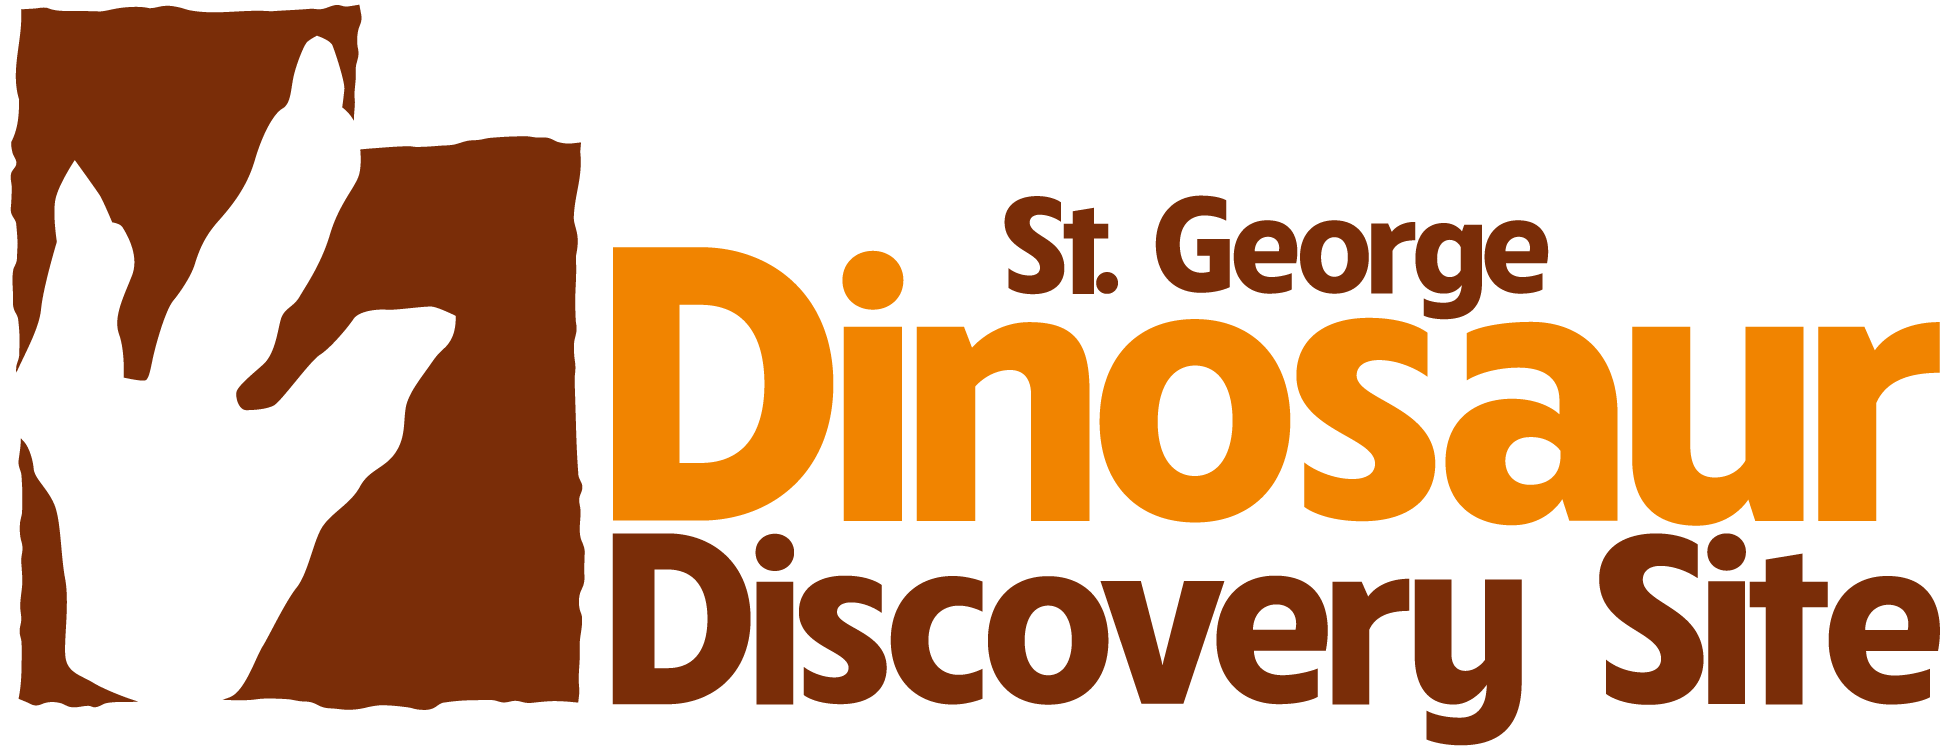 st-george-dinosaur-discovery-site